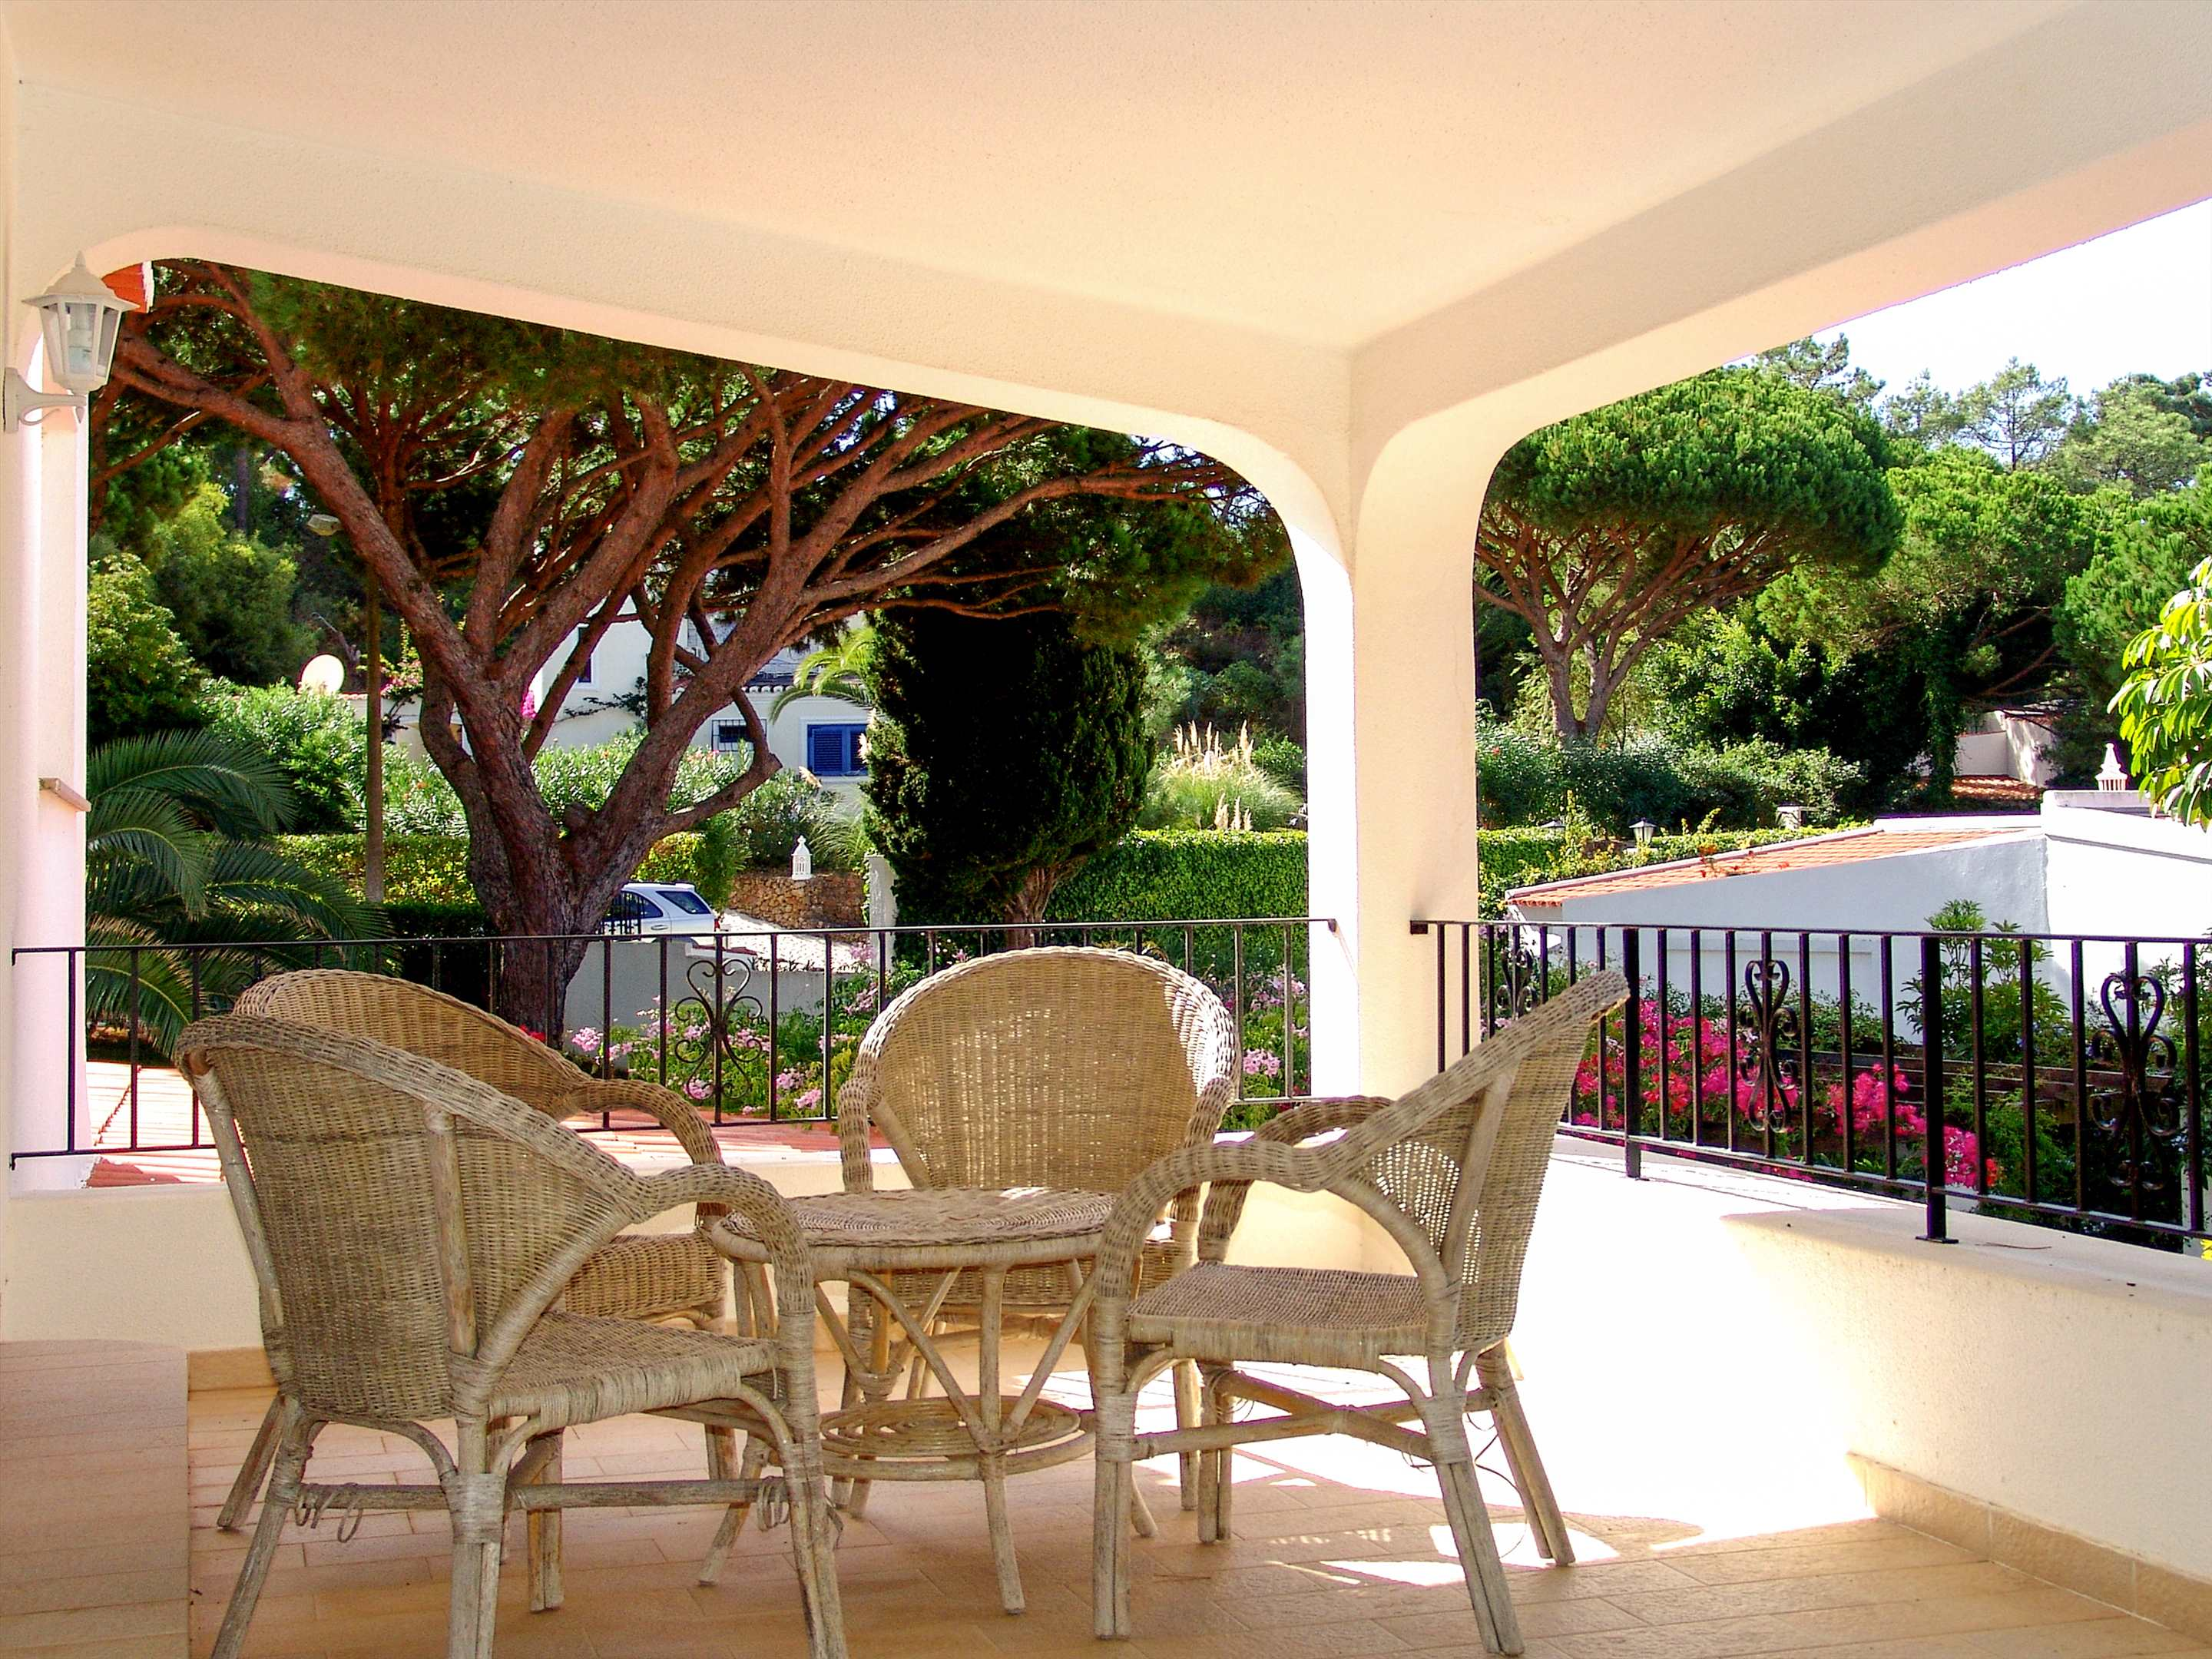 Villa Das Felicidades, 4 bedroom villa in Vale do Lobo, Algarve Photo #11